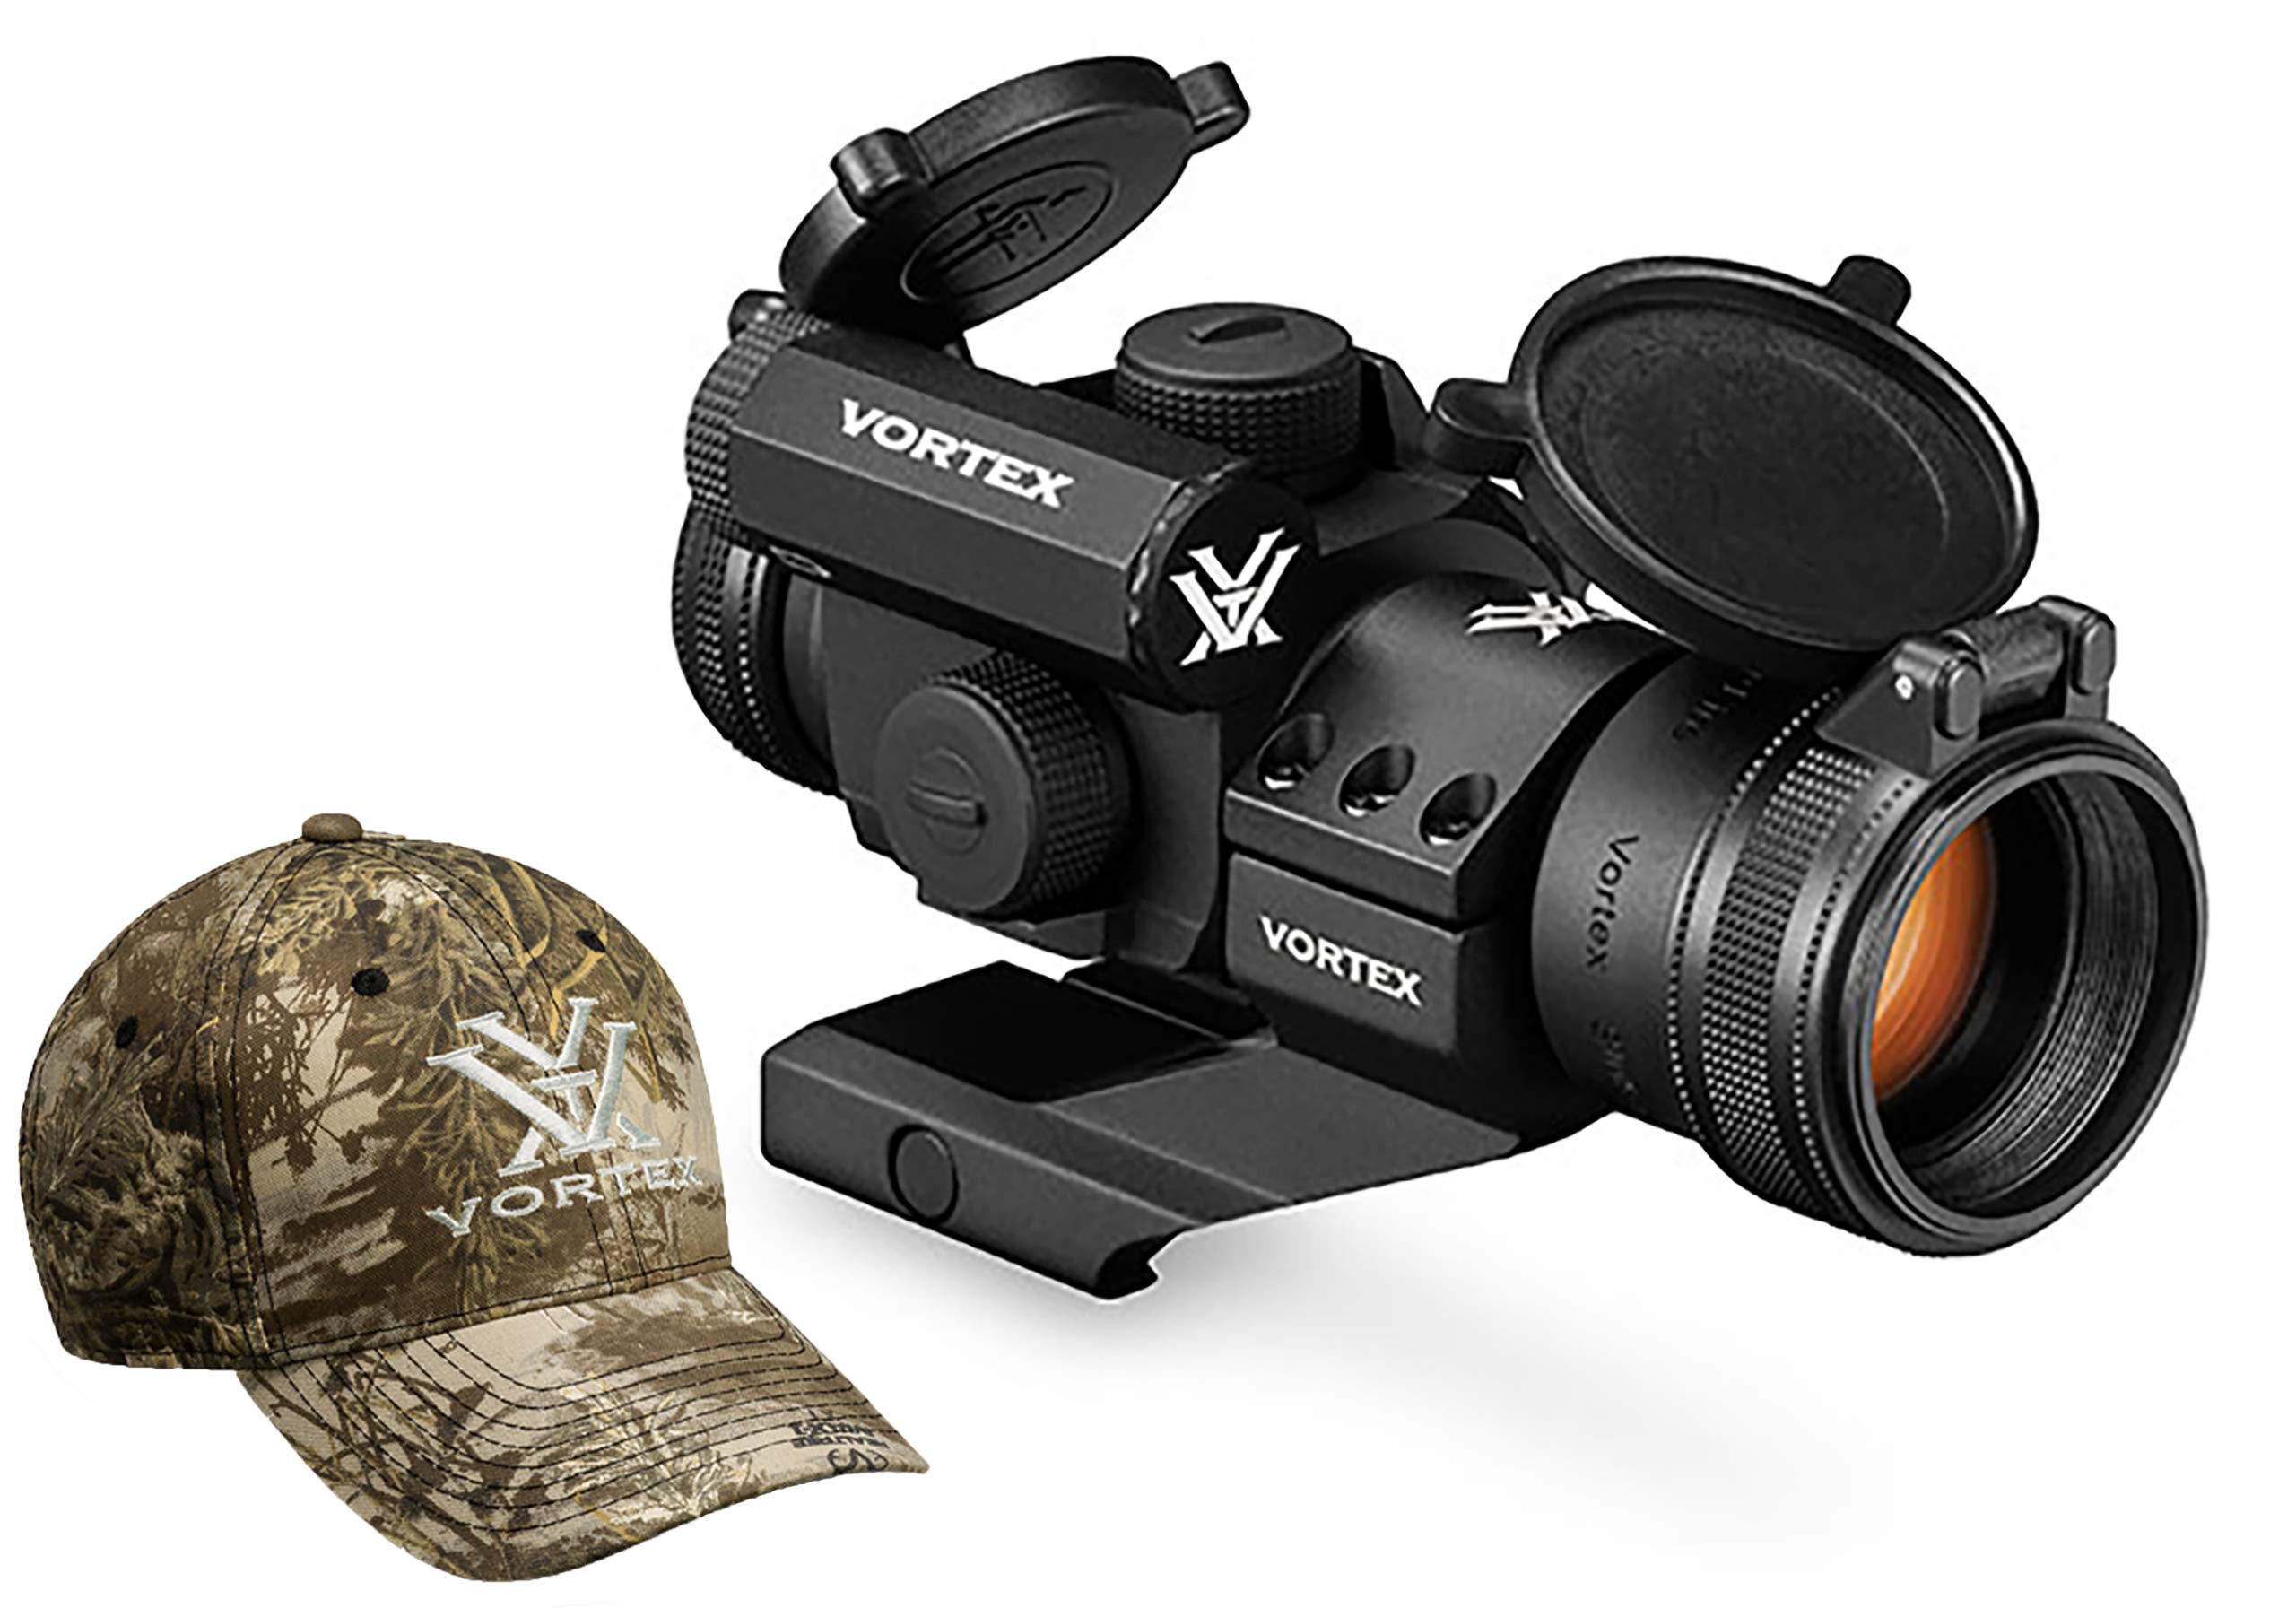 Vortex Optics Strikefire II Red Dot Sight - 4 MOA Red/Green Dot with Vortex Hat by Vortex Optics